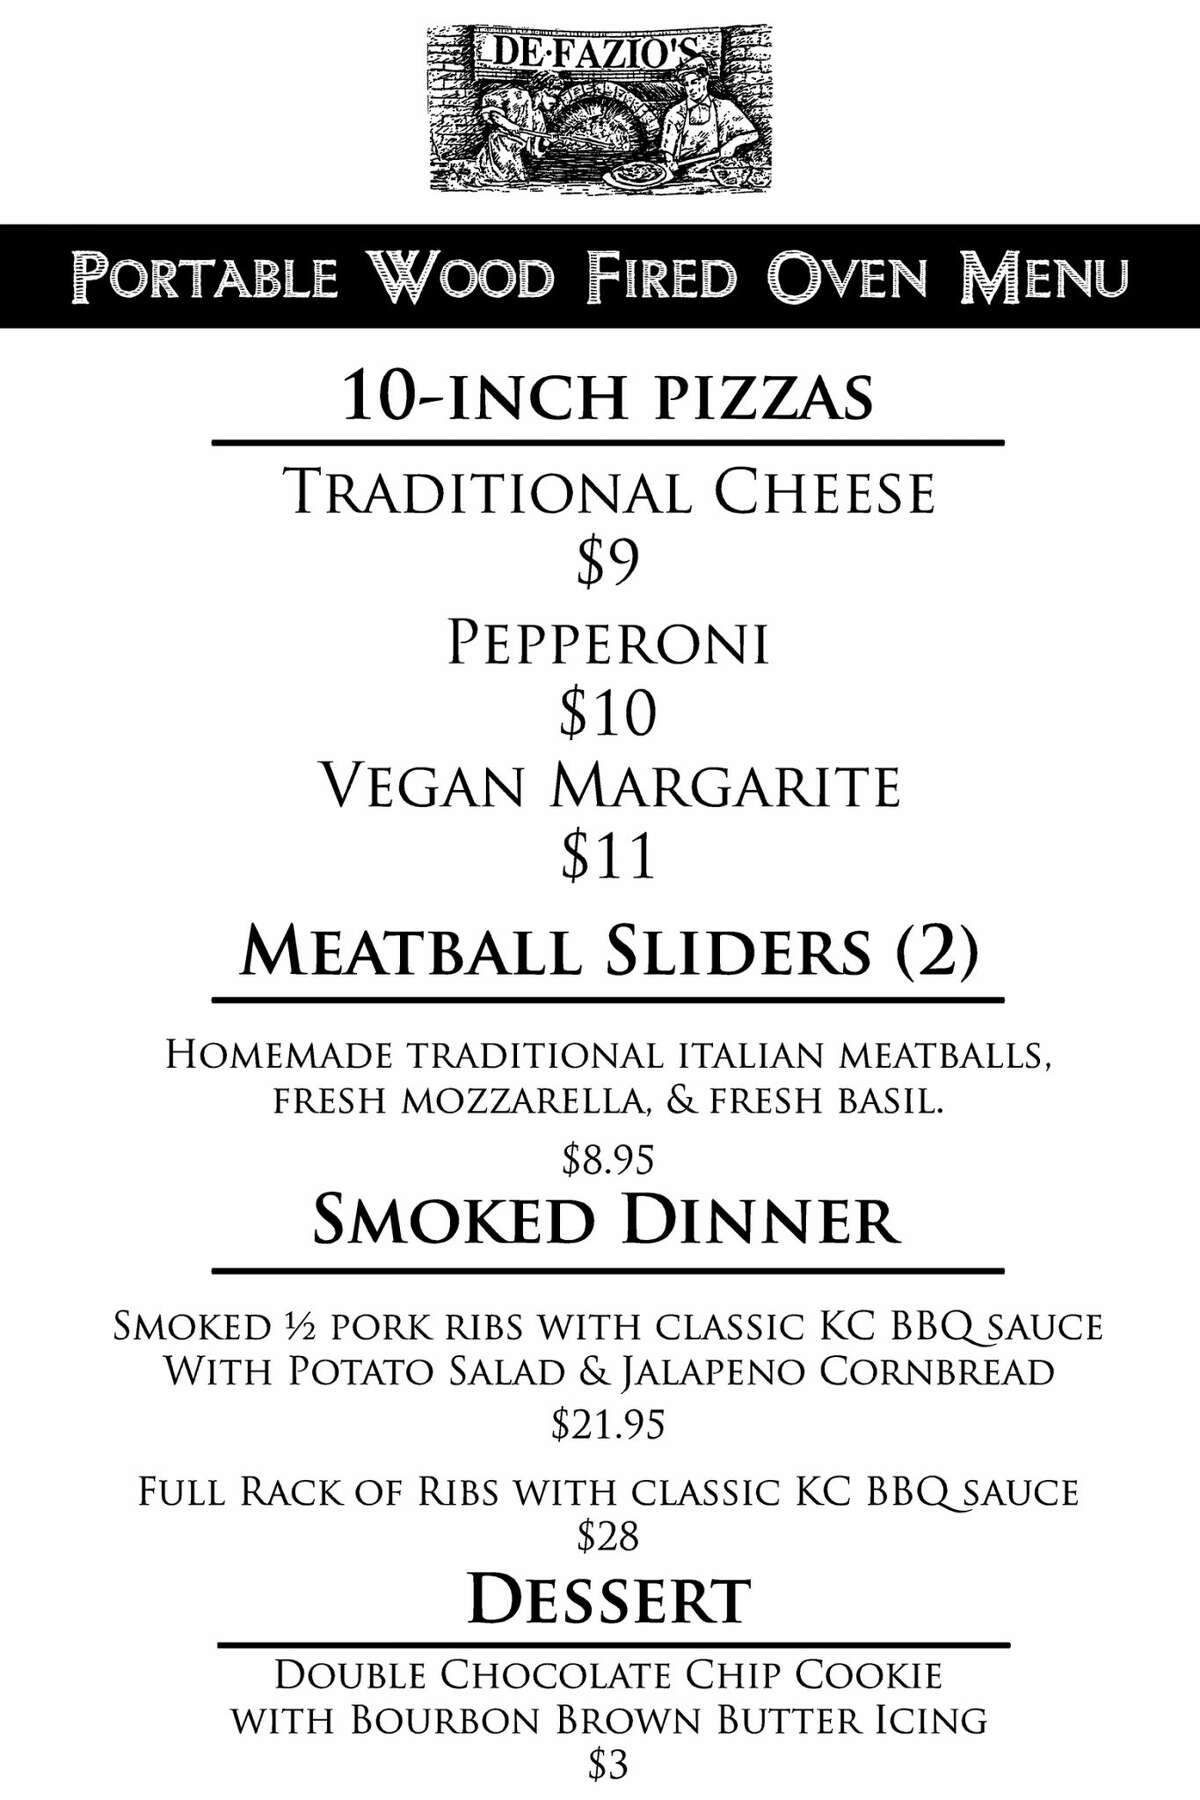 The Troy-based DeFazio's Pizzeria, which is a couple of weeks away from opening a satellite location next to the Albany Distilling Co.' tasting room on Livingston Avenue in downtown Albany, this weekend will offer a menu expanded beyond the pizzas that have been available there in recent weeks.